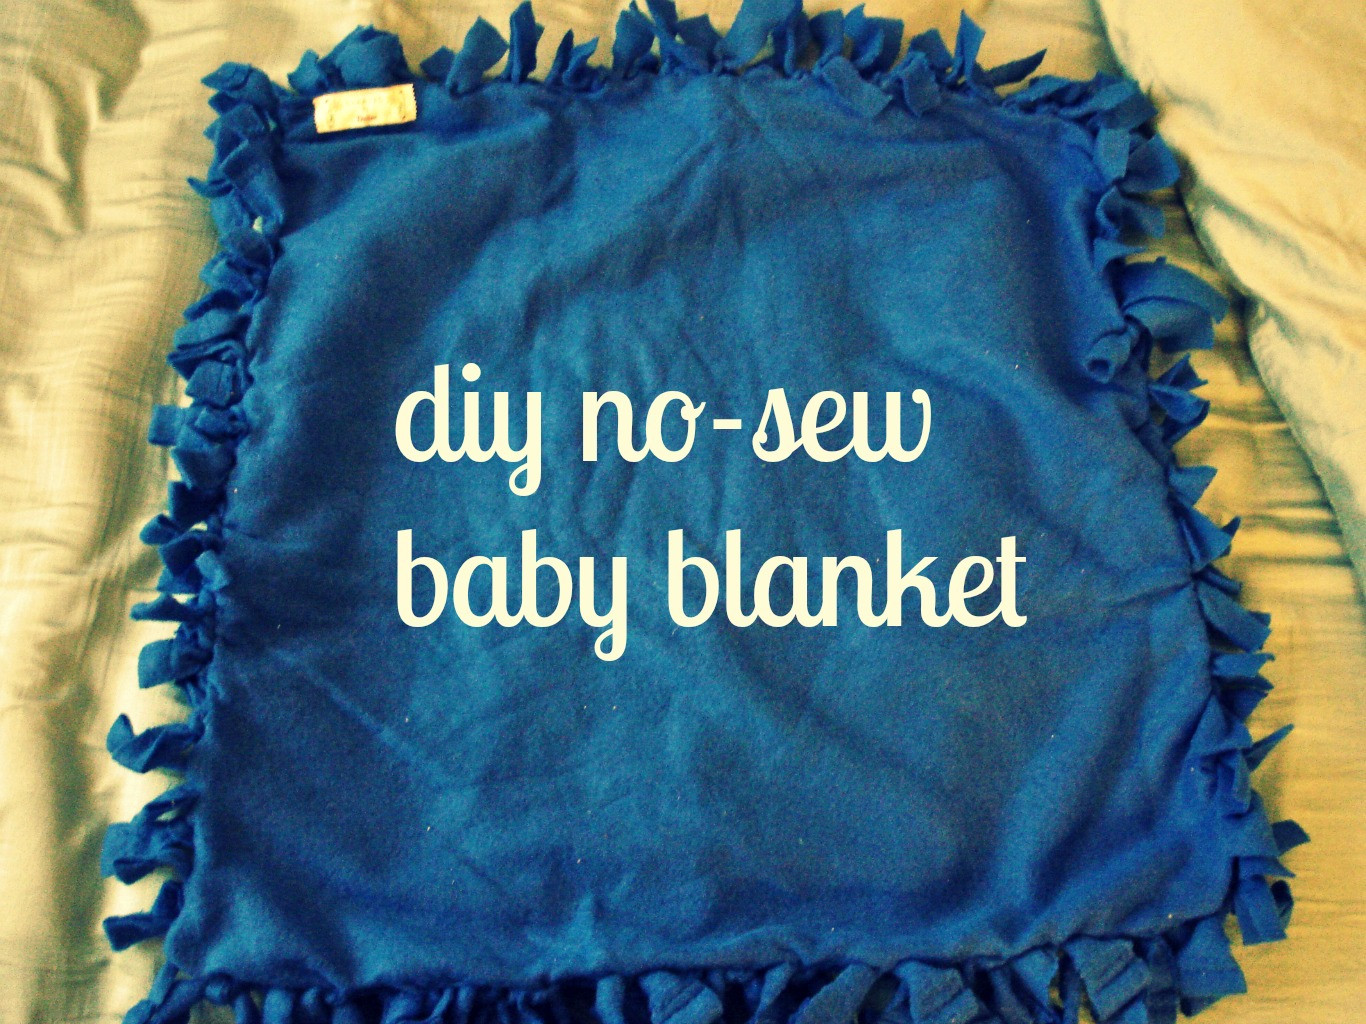 Best ideas about DIY Baby Blanket . Save or Pin diy no sew baby blanket Now.